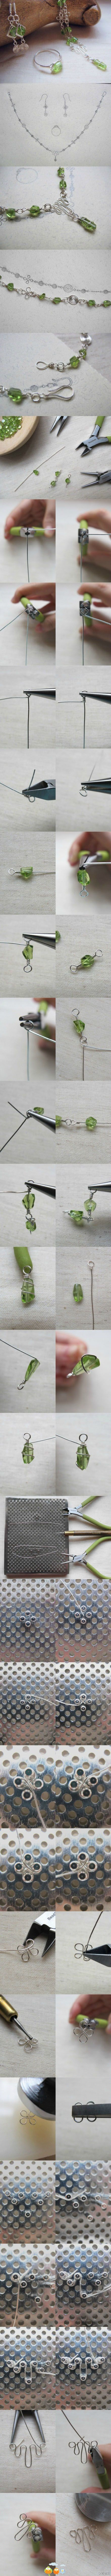 The 102 best Jewelry Wire Jig Patterns images on Pinterest   Jewelry ...